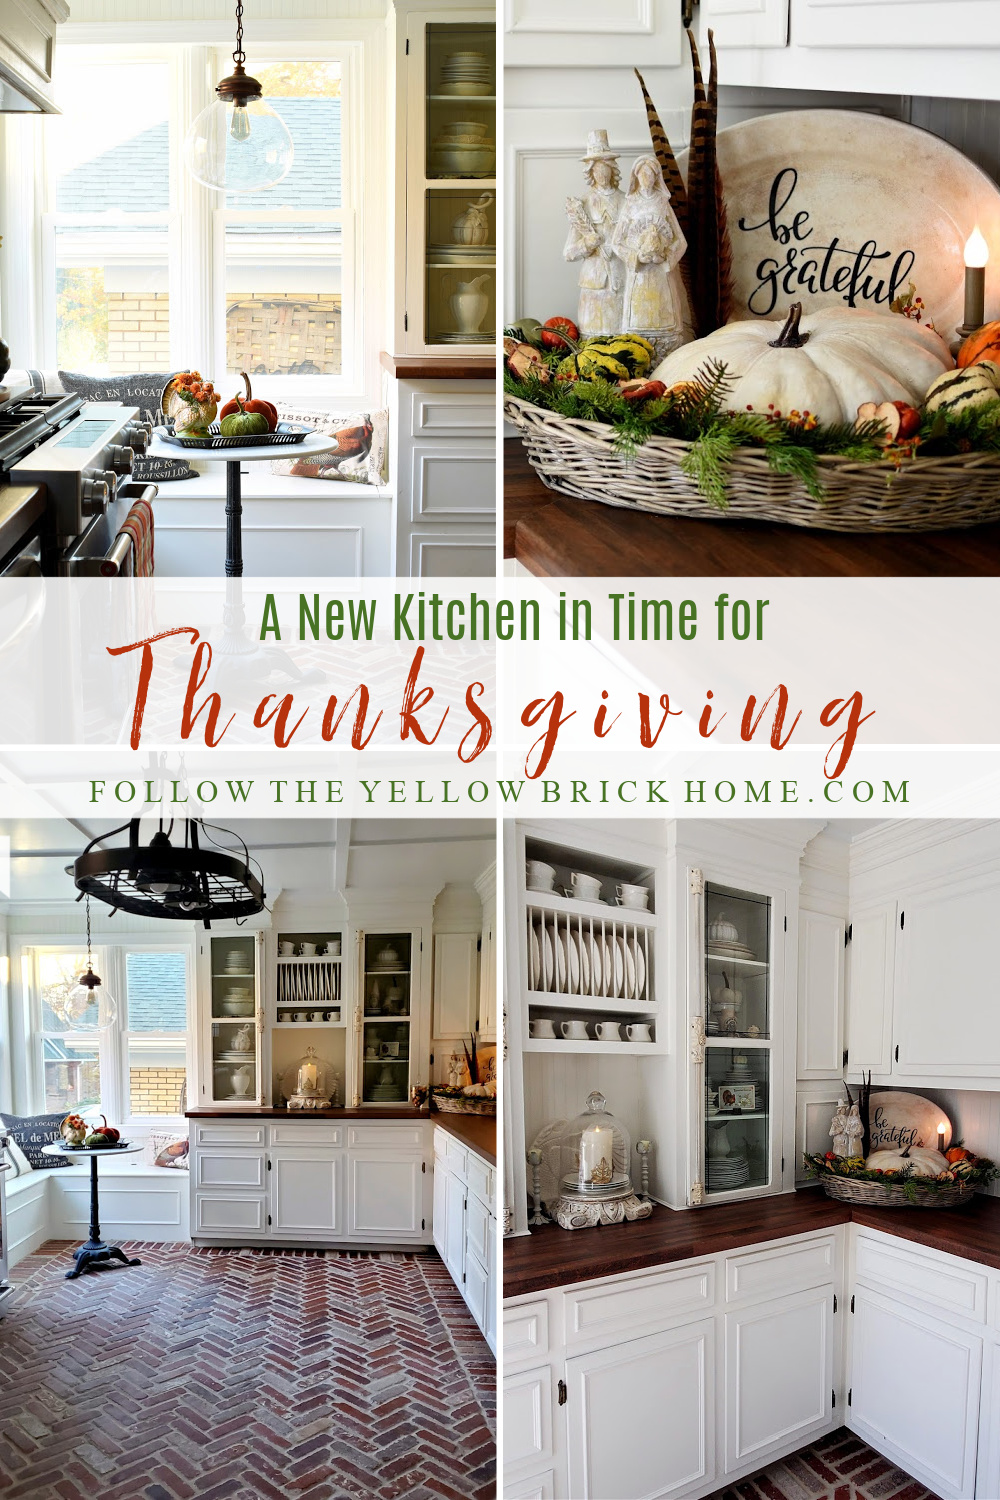 Vintage 1920's kitchen decorated for Thanksgiving vintage cottage kitchen Thanksgiving decor #Brickfloors #brickpaverfloor